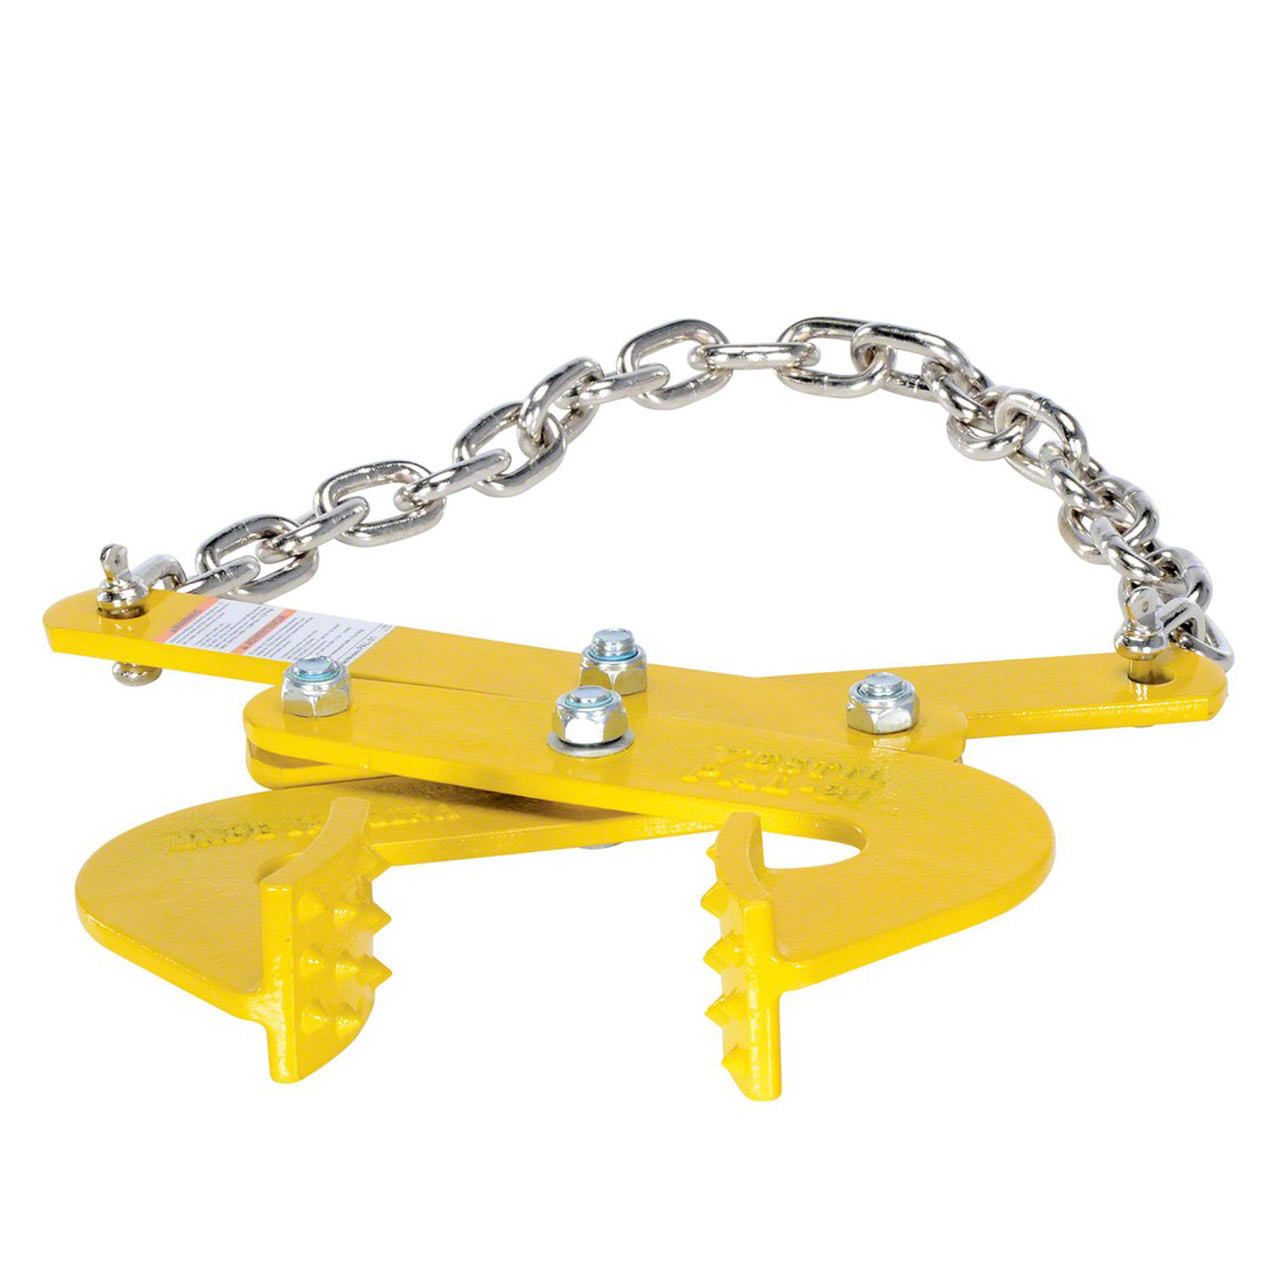 The one piece curved heads on the PAL-21 pallet pullers have integral spurs for gripping pallet stringers